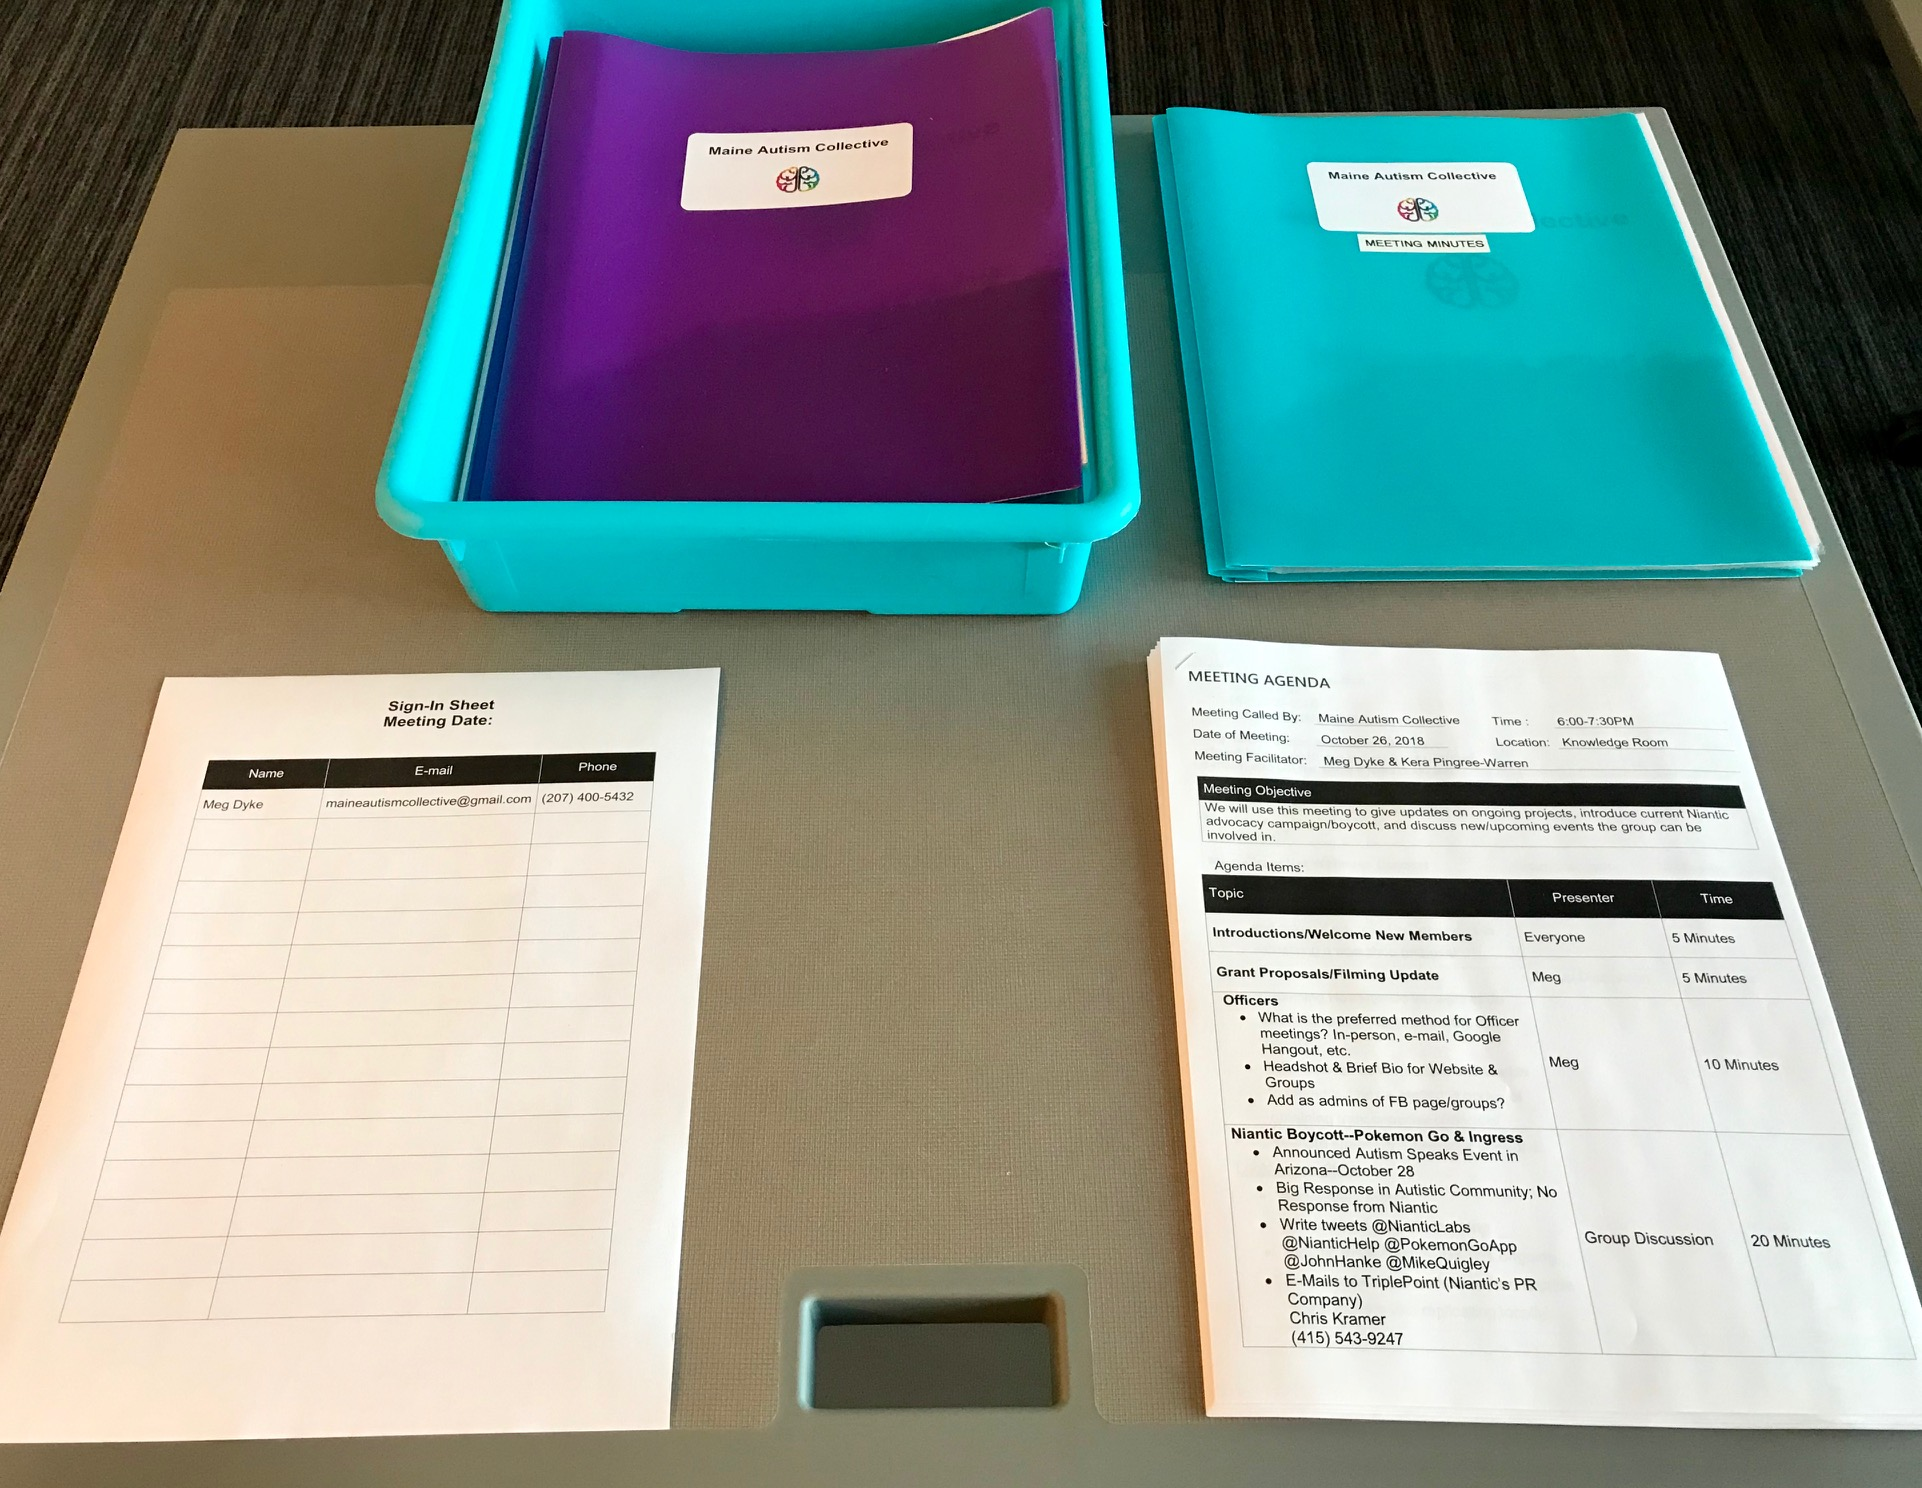 Materials for Members - The agenda for the current meeting is available for all attendees in addition to a copy of all past meeting minutes for review. Member folders complete with our meeting schedule, group information & code of conduct are also set out with these materials and our sign-in sheet near the entrance for easy access.